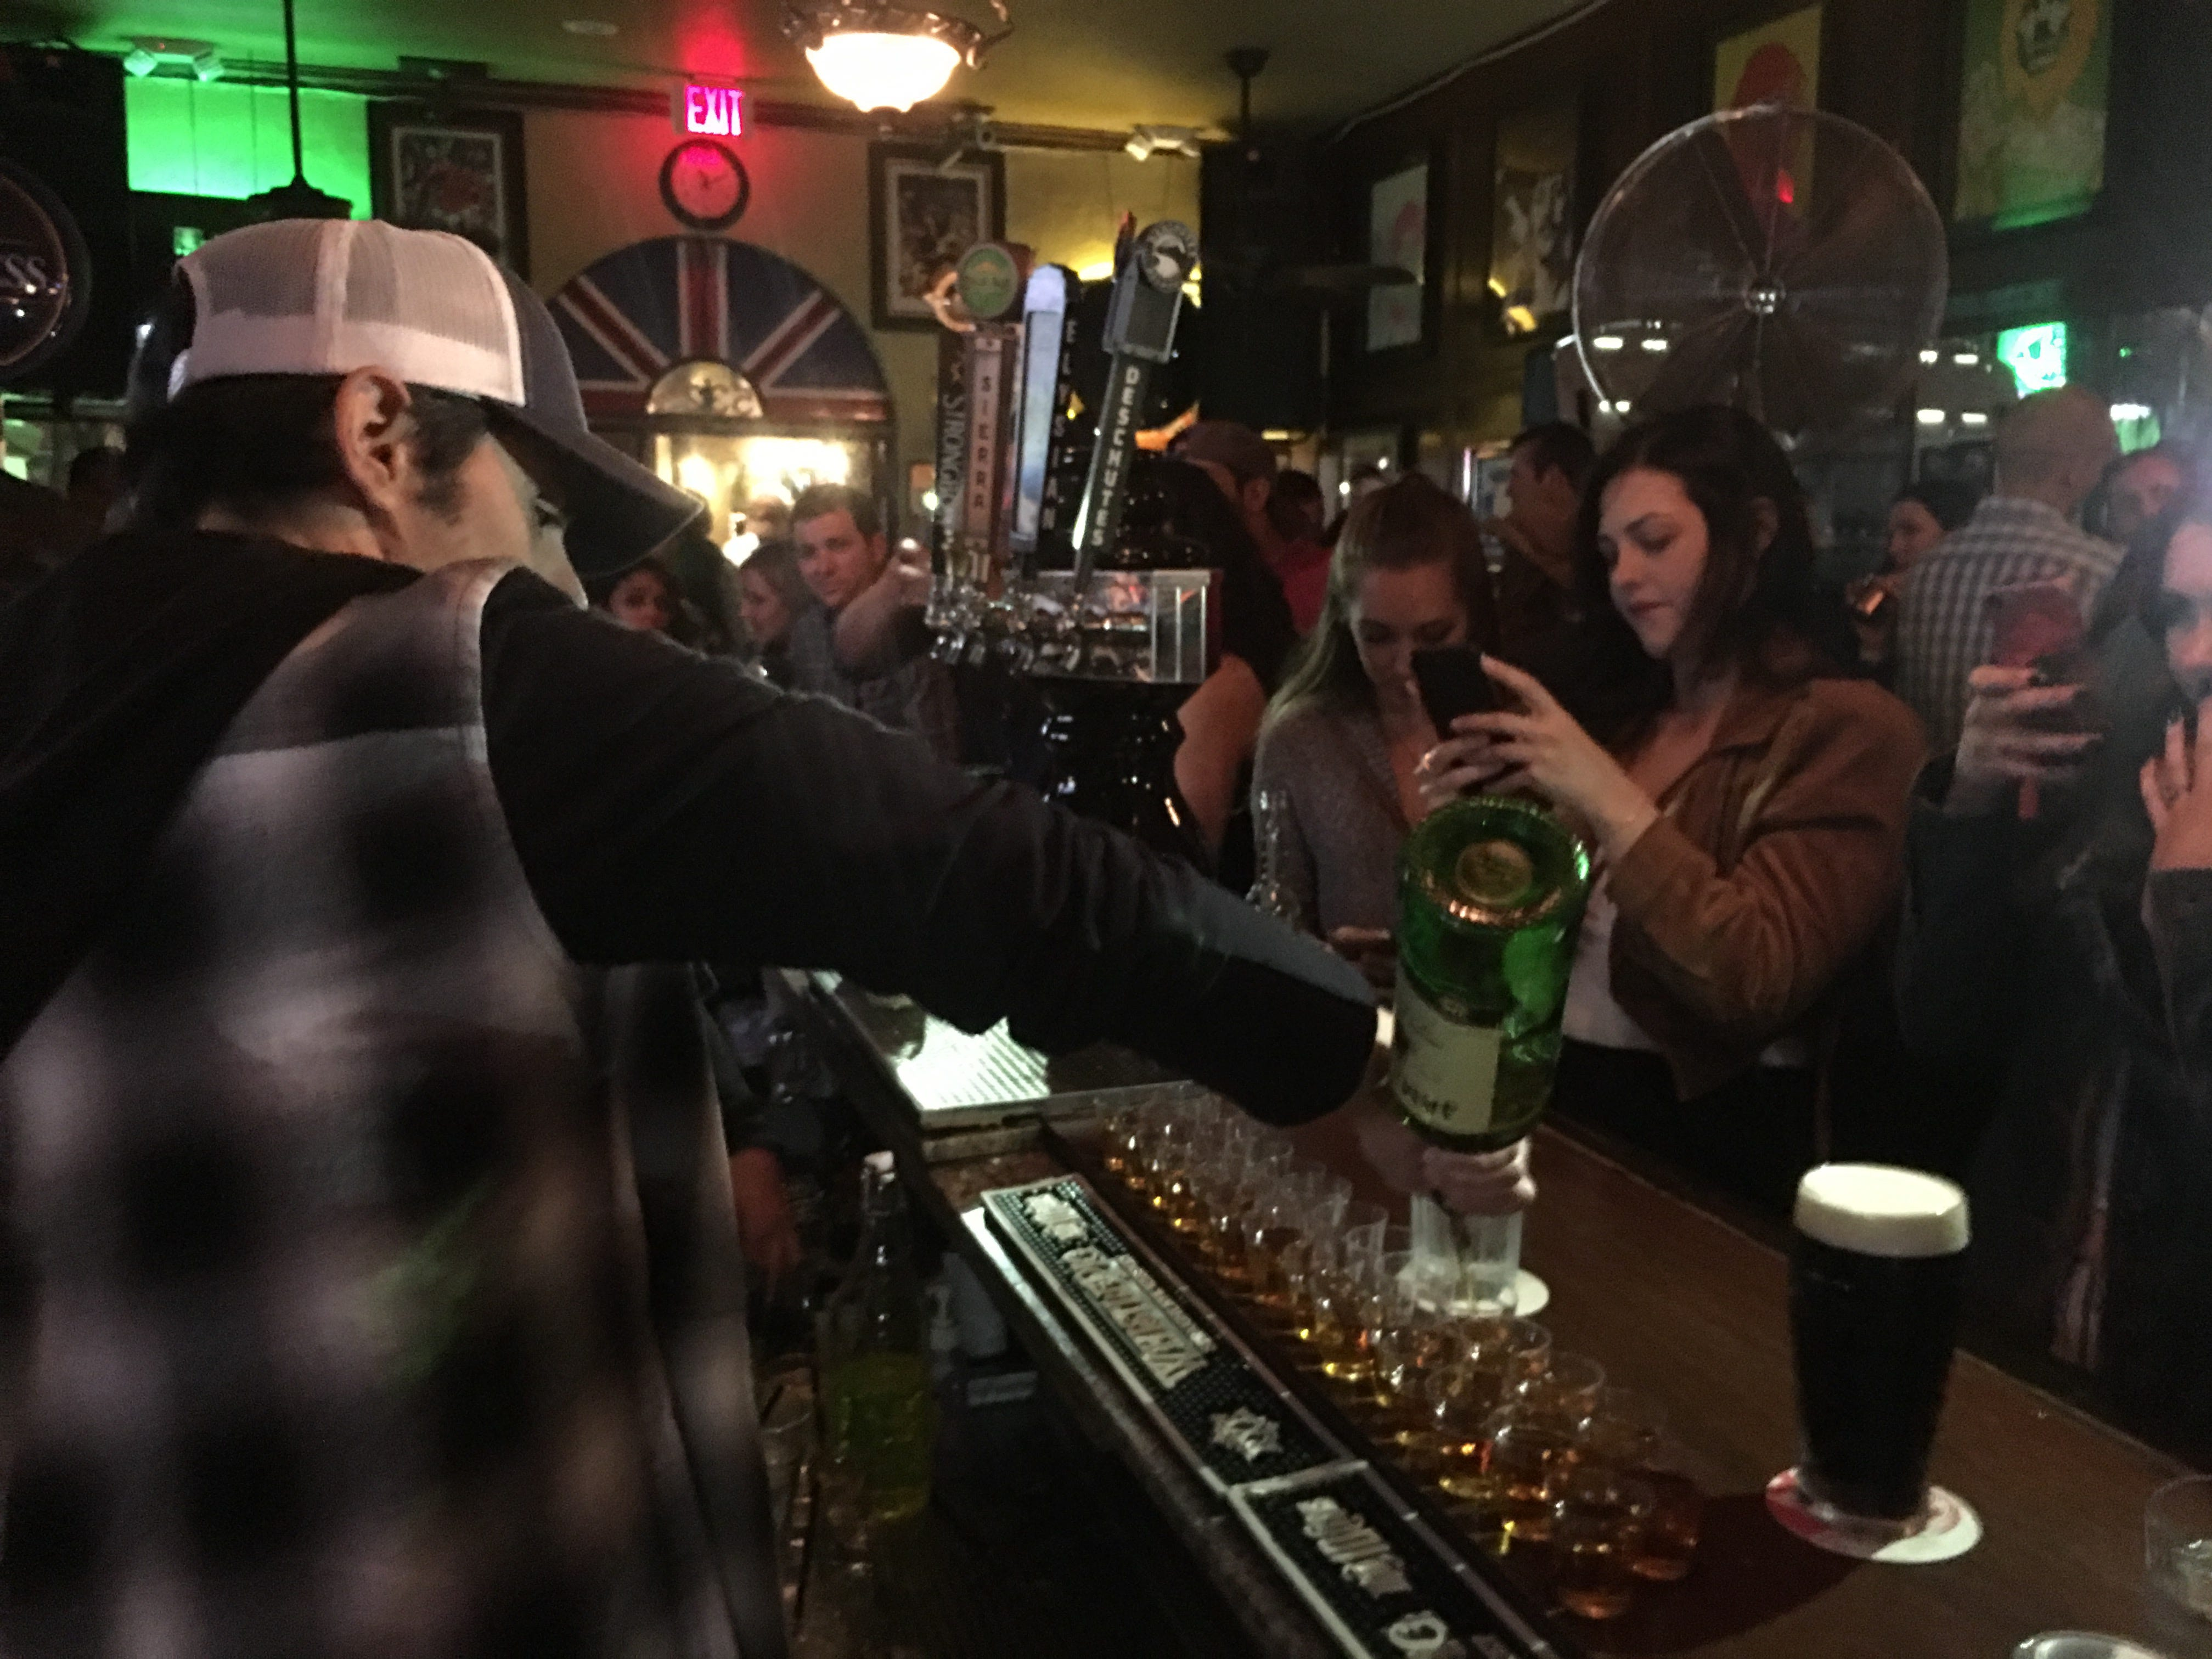 Brad Paisley pours shots at Old King's Road pub in Santa Barbara, Calif., May 12, 2018, before he plays a concert in the city to benefit victims of wildfires and mudslides. Paisley wanted to give a boost to businesses in Santa Barbara.